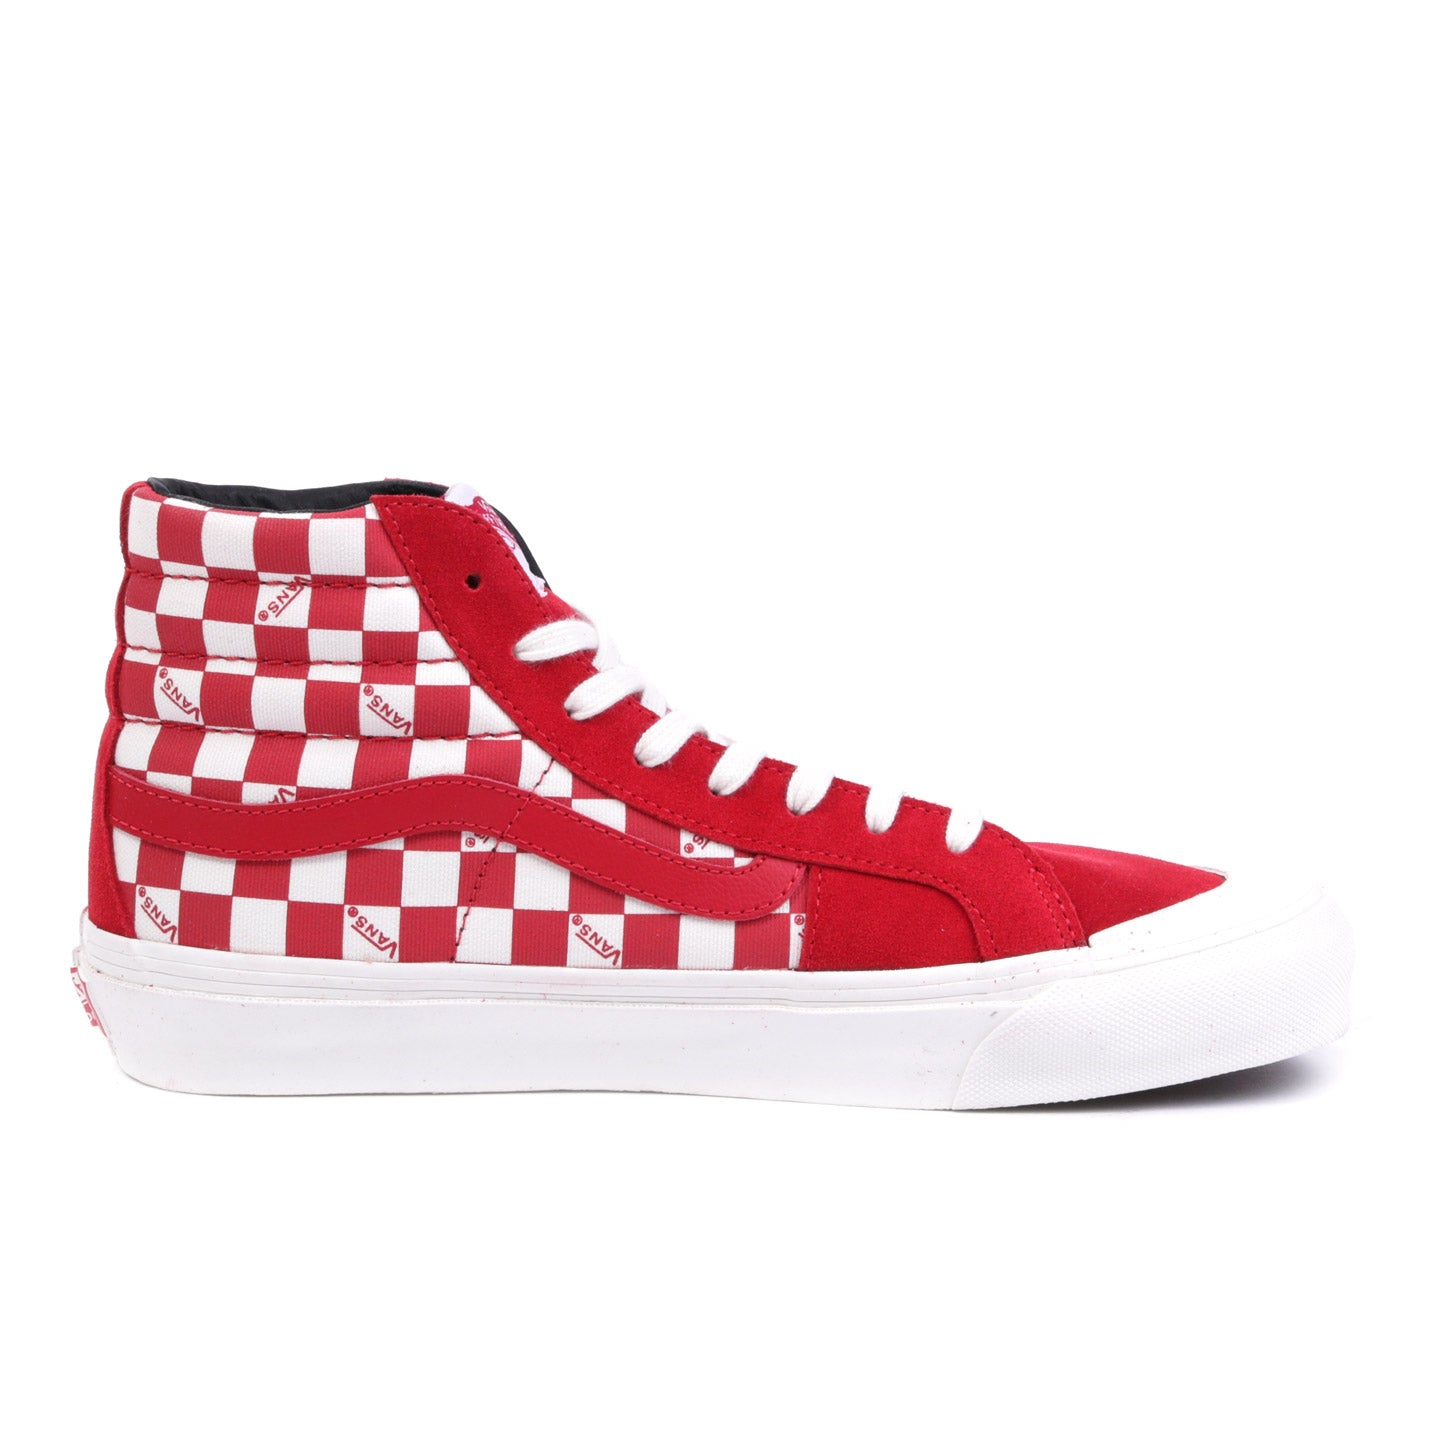 VAULT BY VANS OG STYLE 138 LX RACING RED / CHECKERBOARD